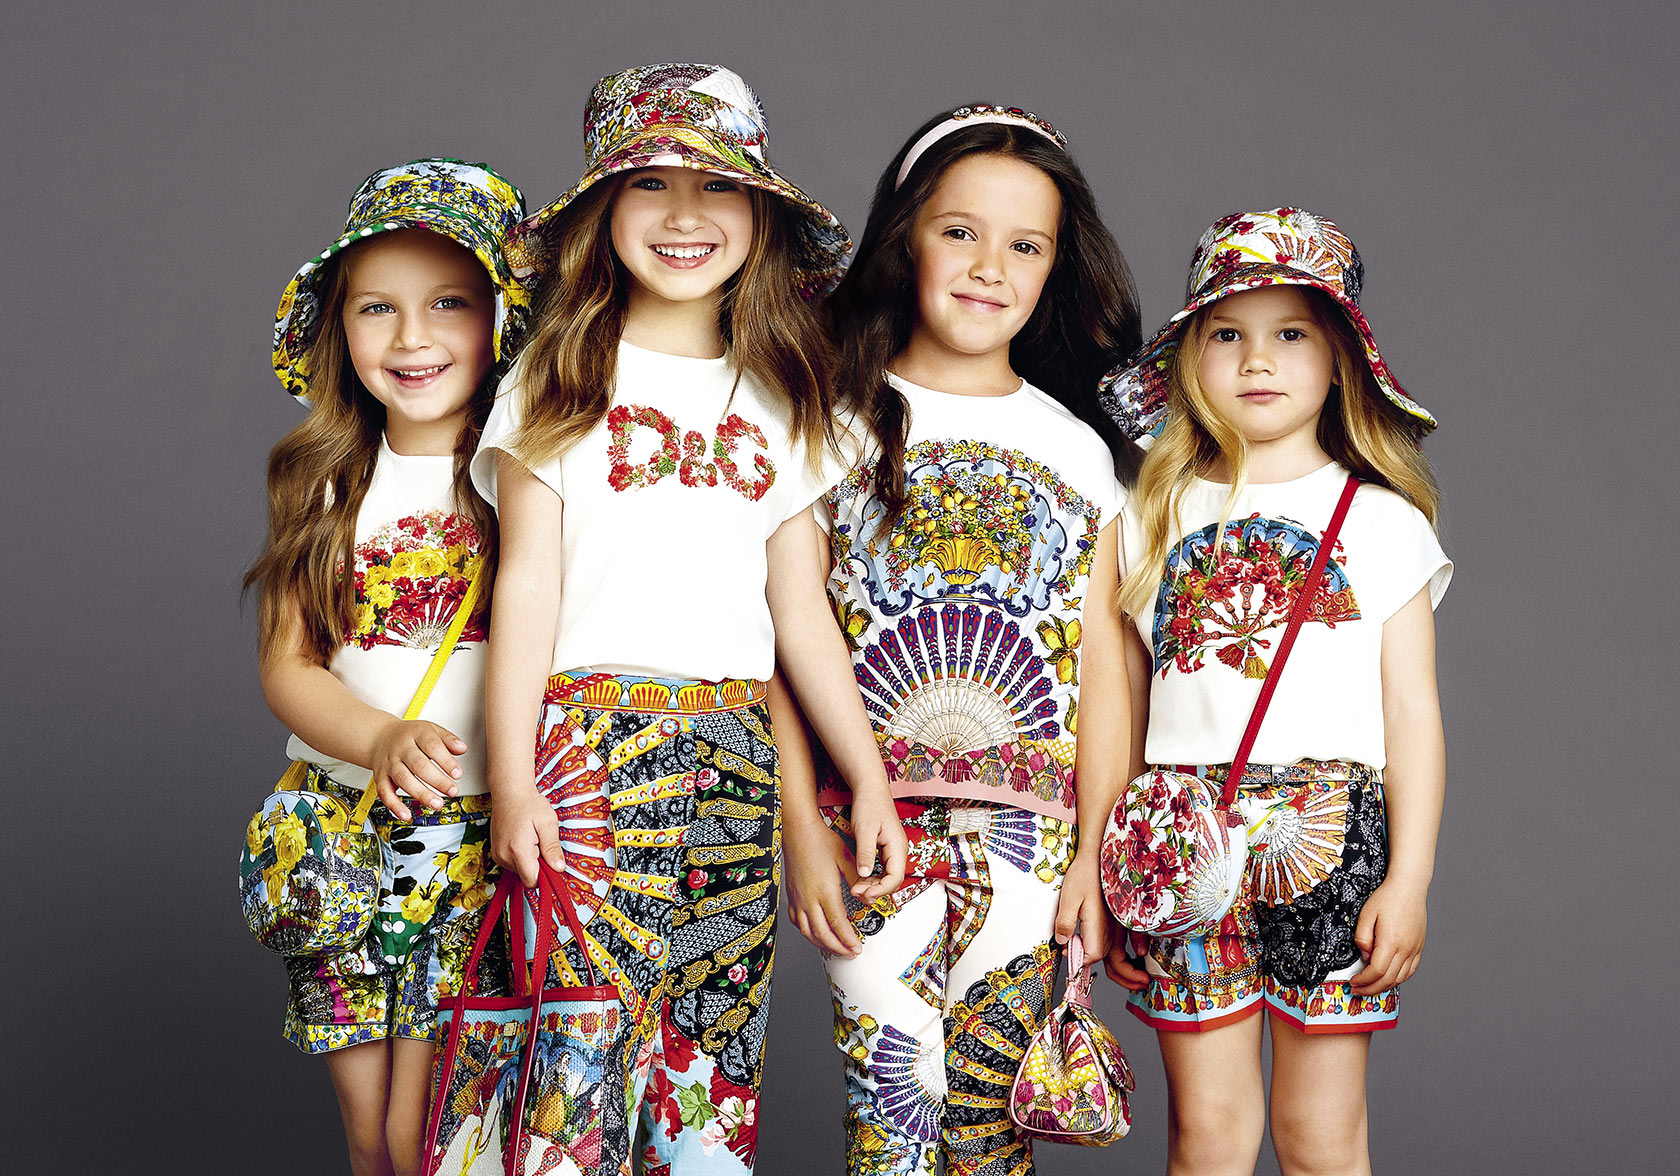 dolce-and-gabbana-summer-2015-child-collection-18-zoom.jpg